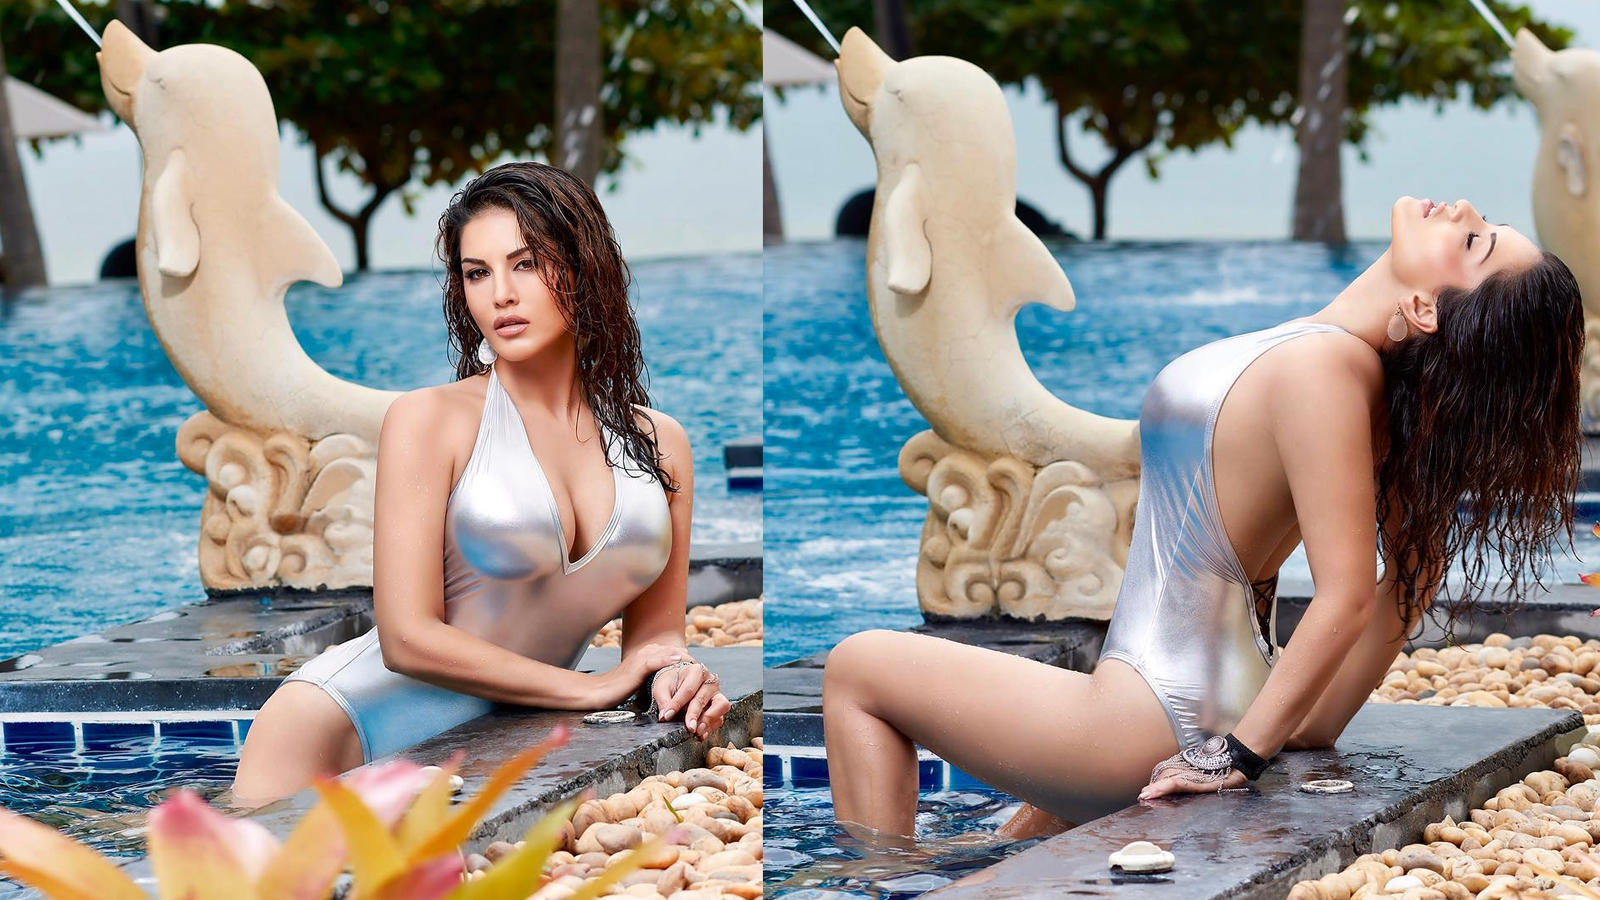 Sunny Leone looks sizzling hot in this silver monokini